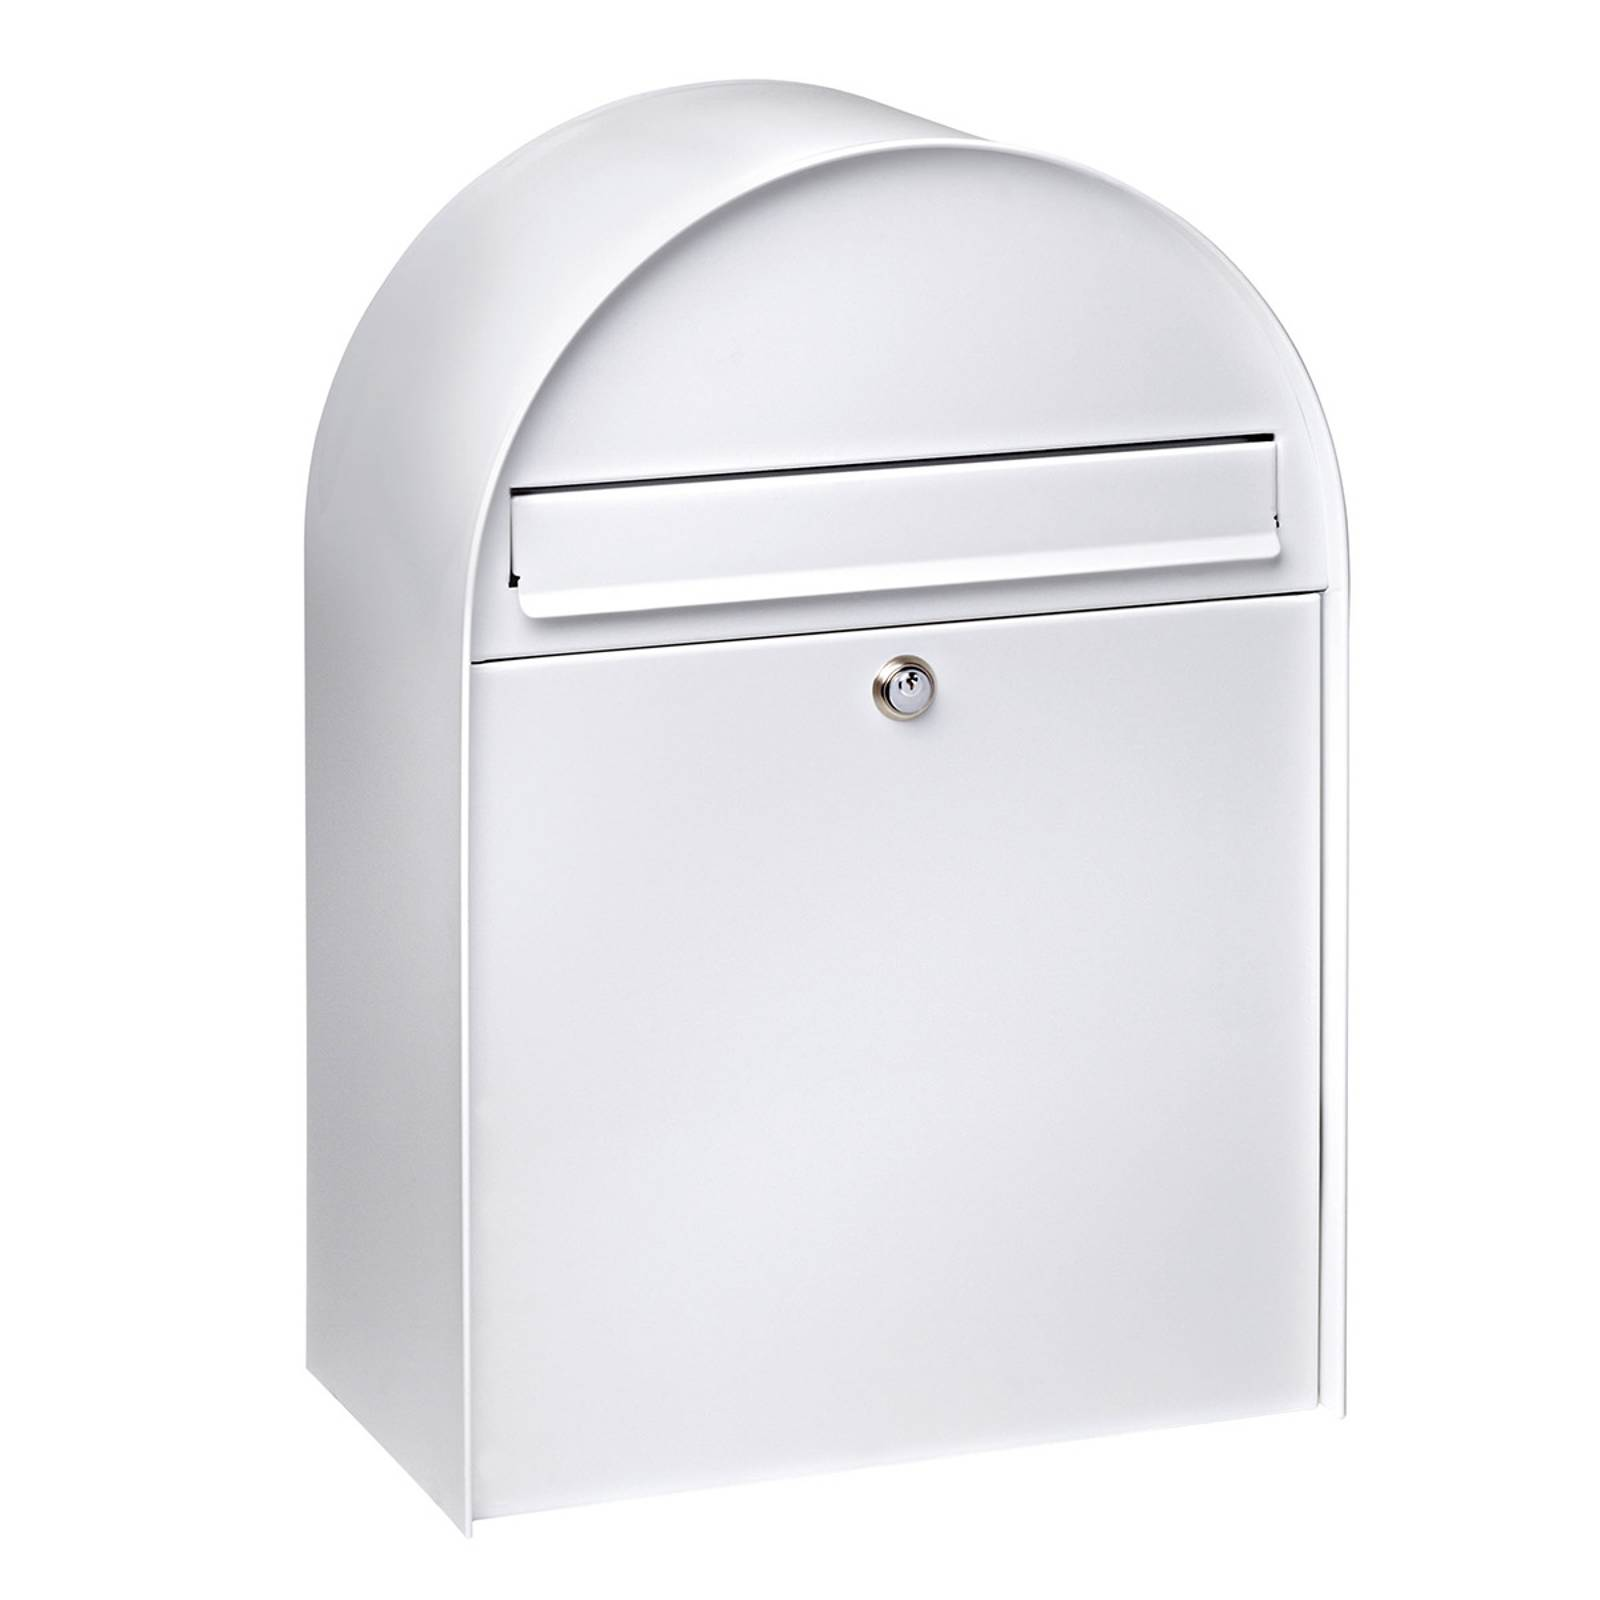 Spacious letter box Nordic 680 in white from Burgwächter